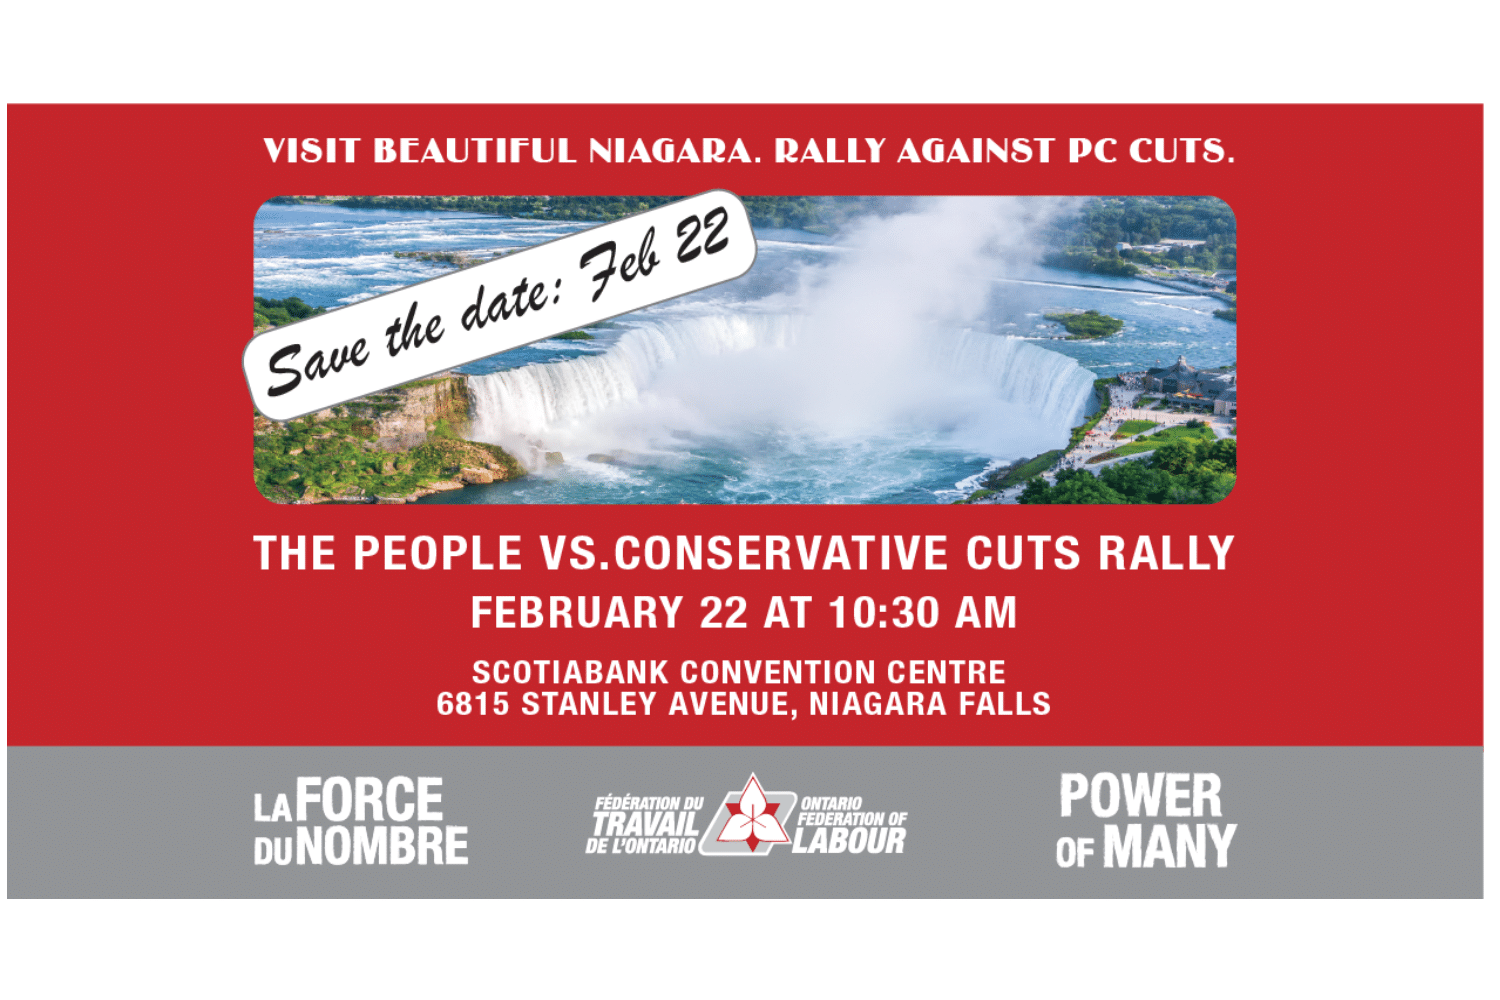 The people vs. Conservative Cuts Rally February 22 at 10:30 am Scotiabank Convention Center Niagara Falls